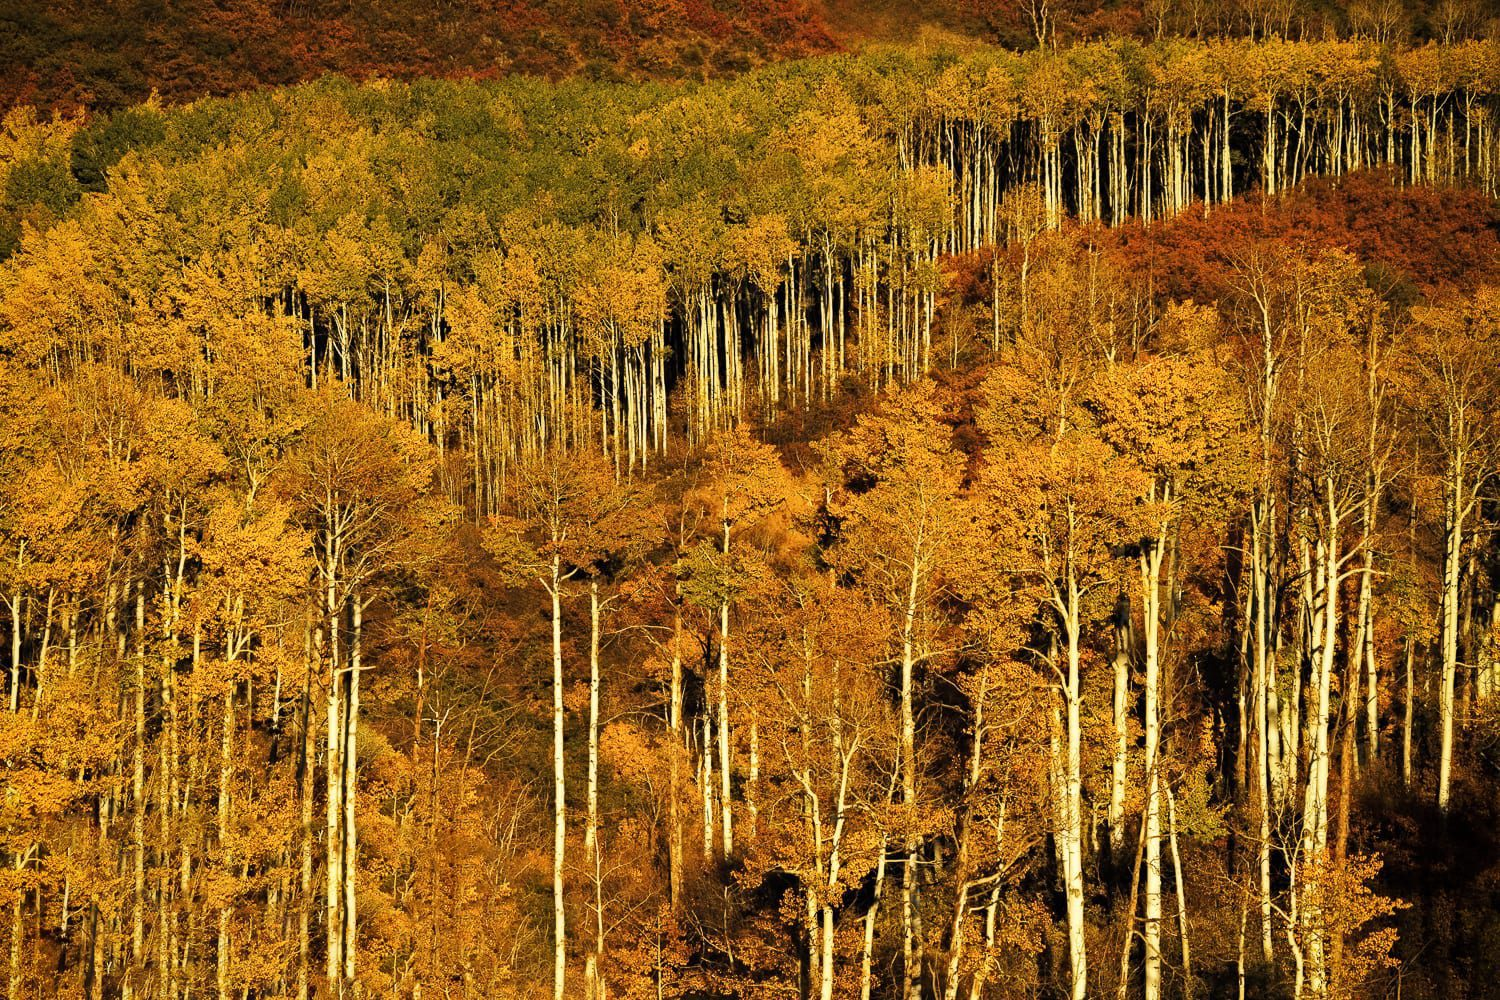 Tall aspen trees in yellow and orange on the side of a hill.